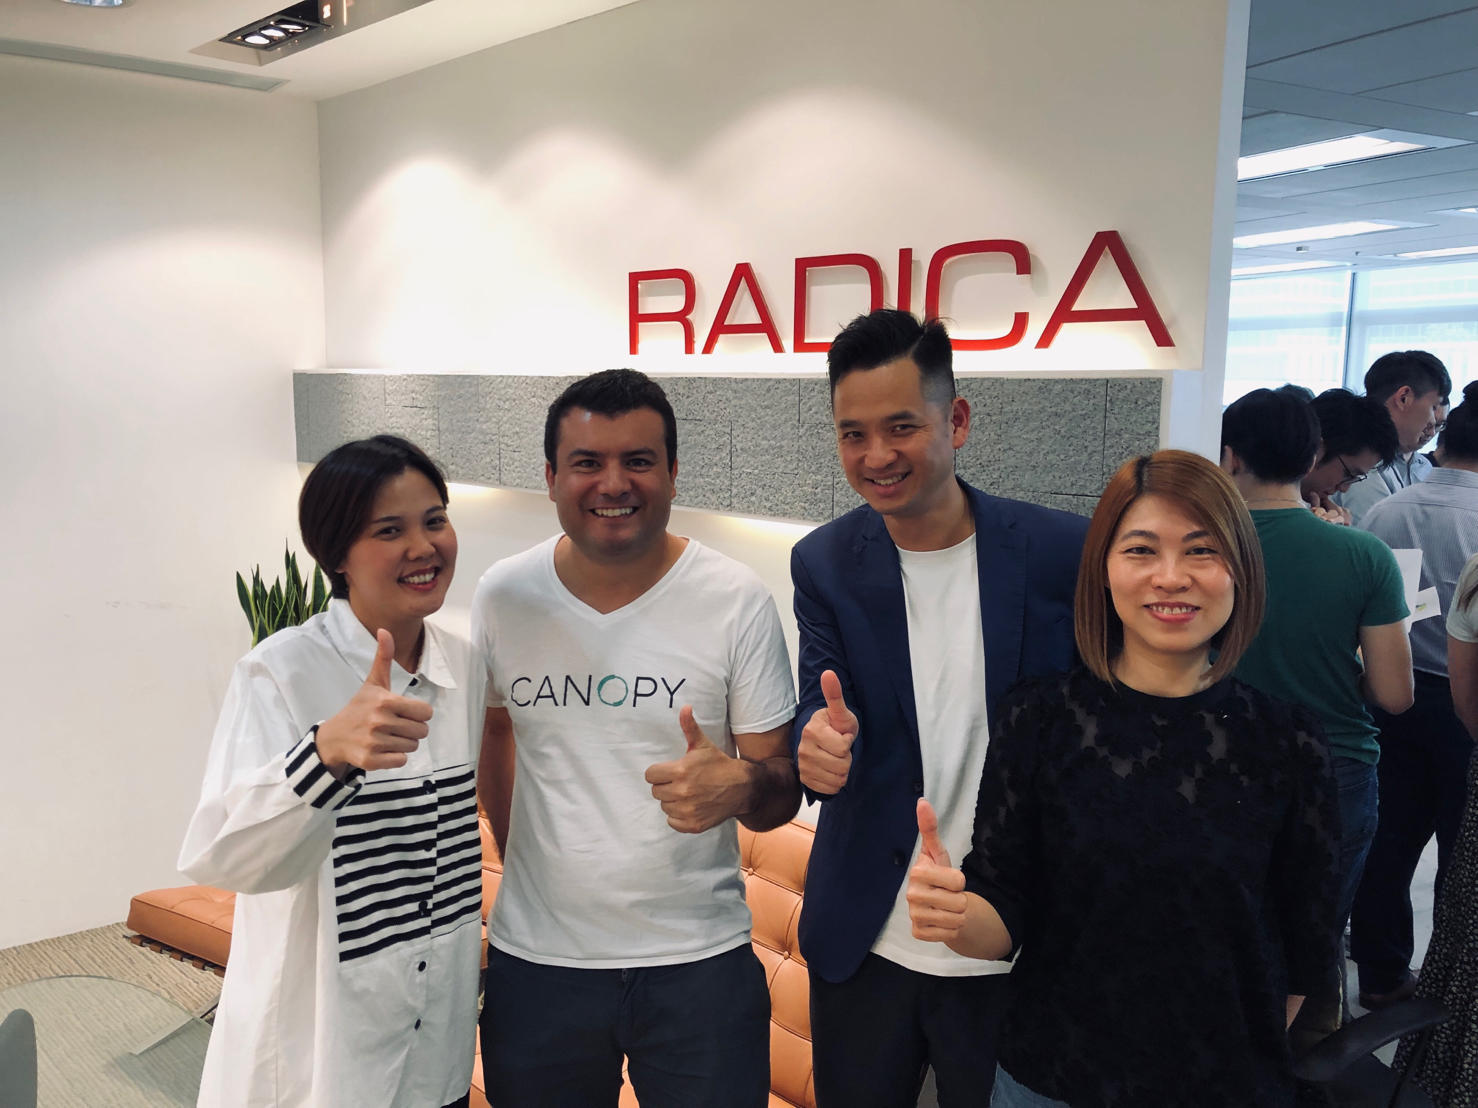 Wallis Chan, Managing Director of RADICA, Julio Orr of Canopy, Francis Kwok, Founder and Chairman of RADICA, & Irene Cheung, Co-Founder of RADICA, pose for a picture in our Hong Kong headquarters